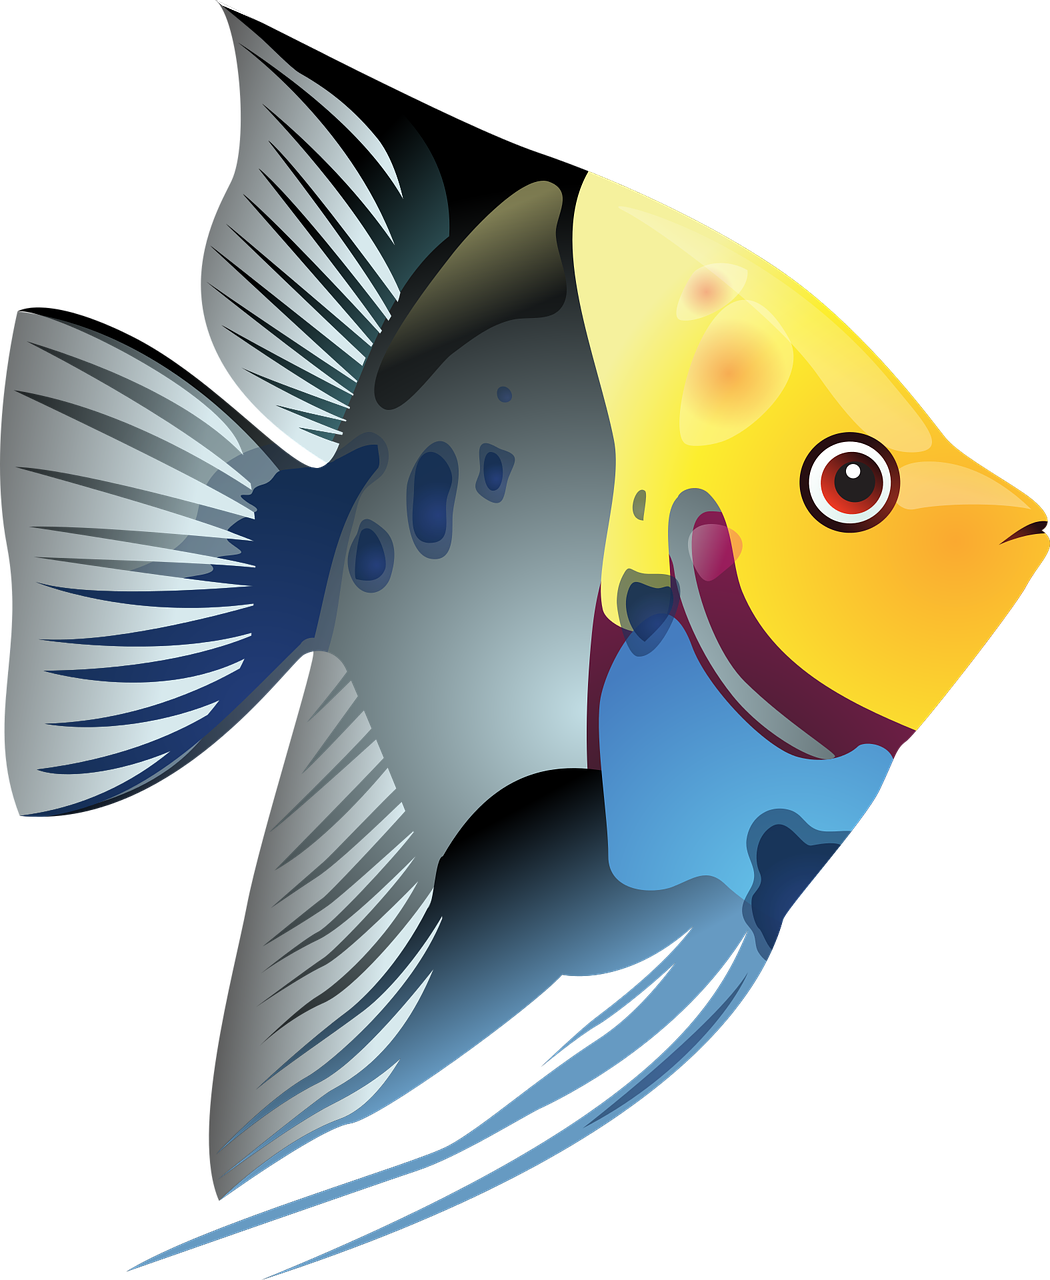 How to draw a fish - the best 5